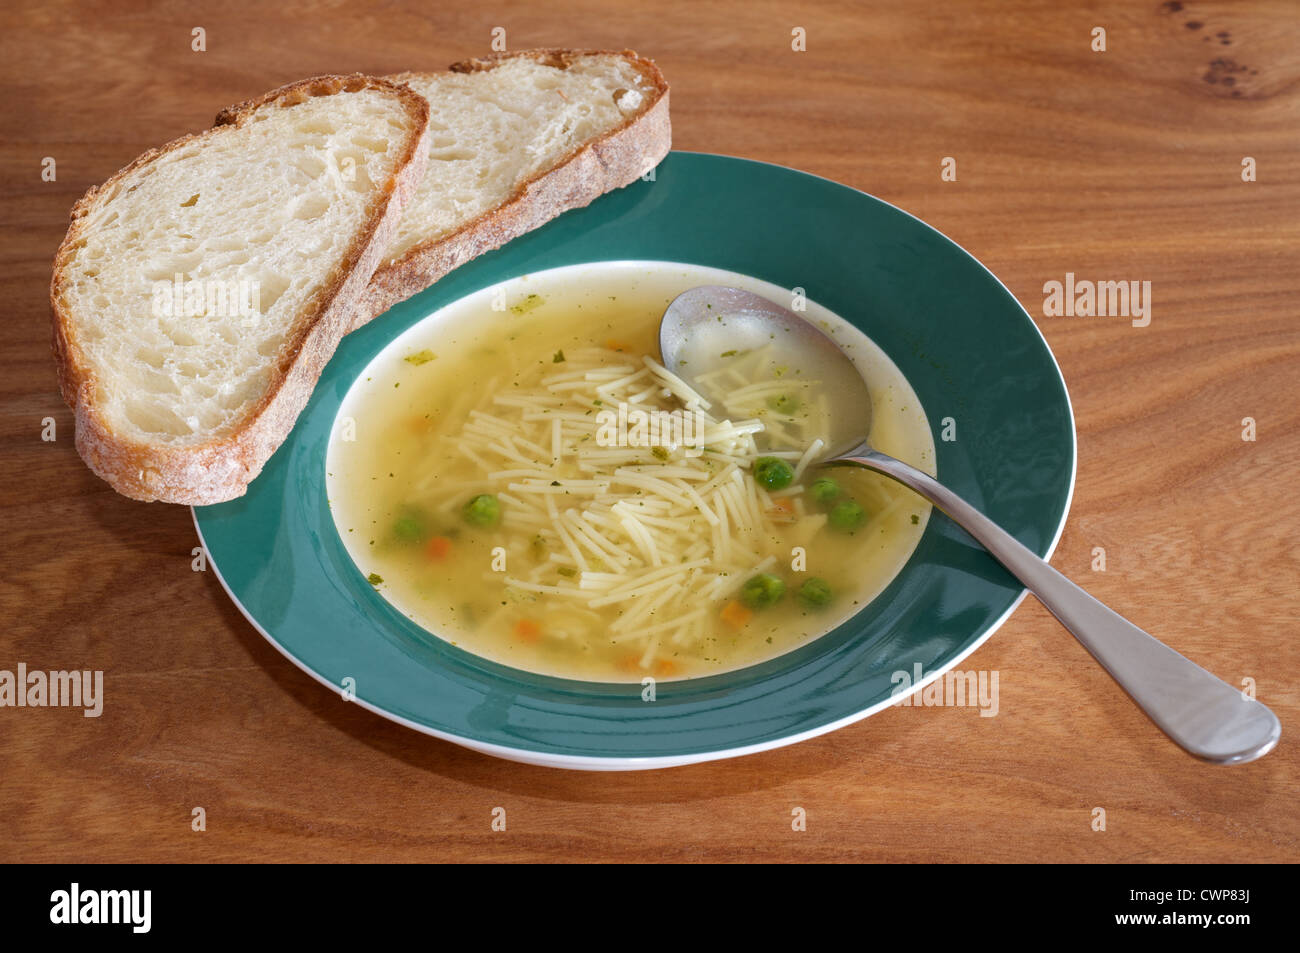 Knorr Minestrone soup - Stock Image